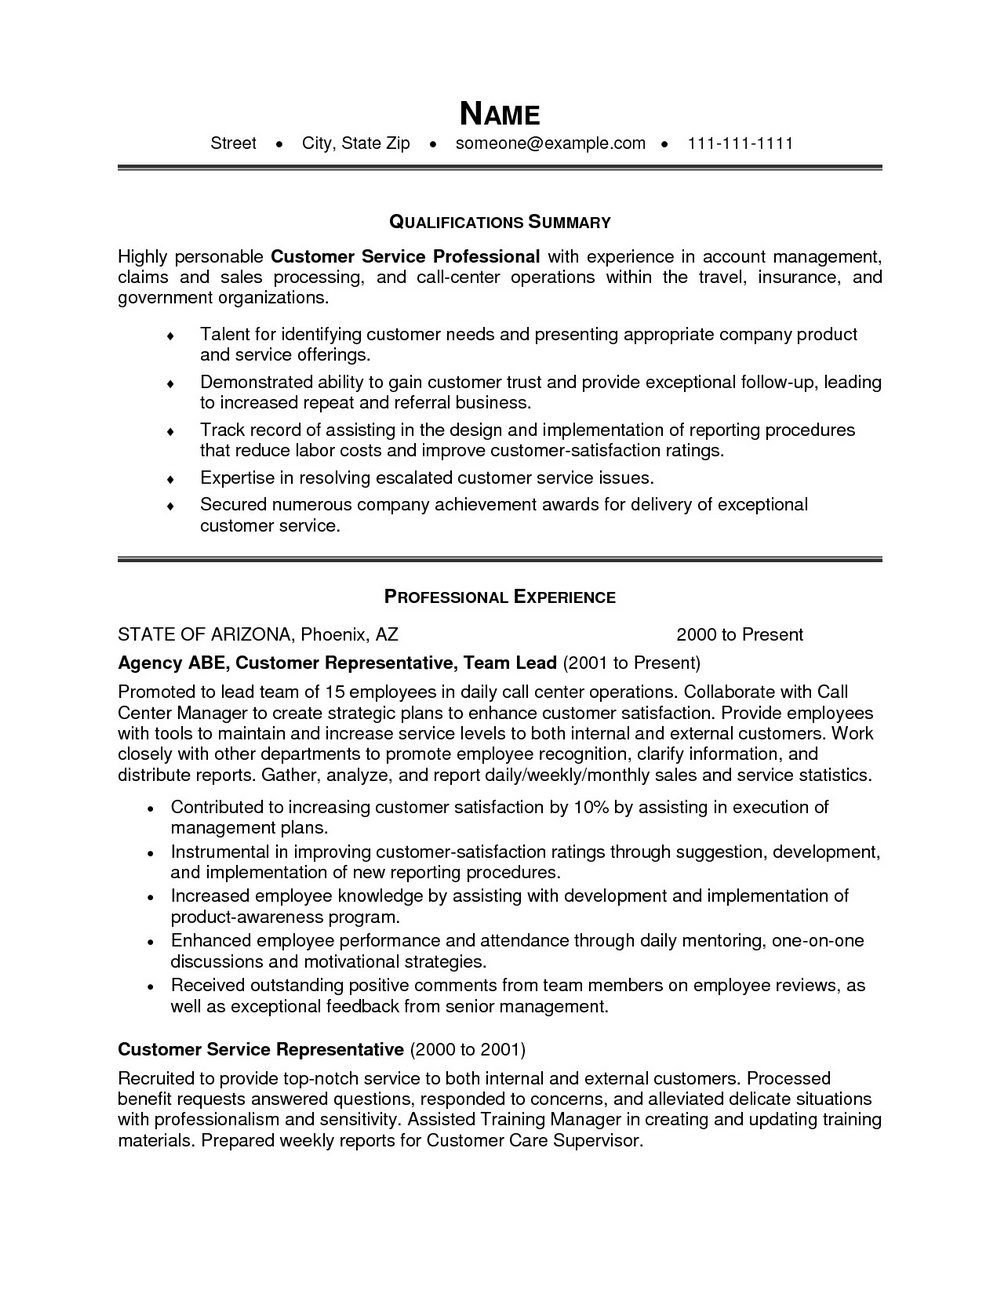 Professional Resume Writers Los Angeles